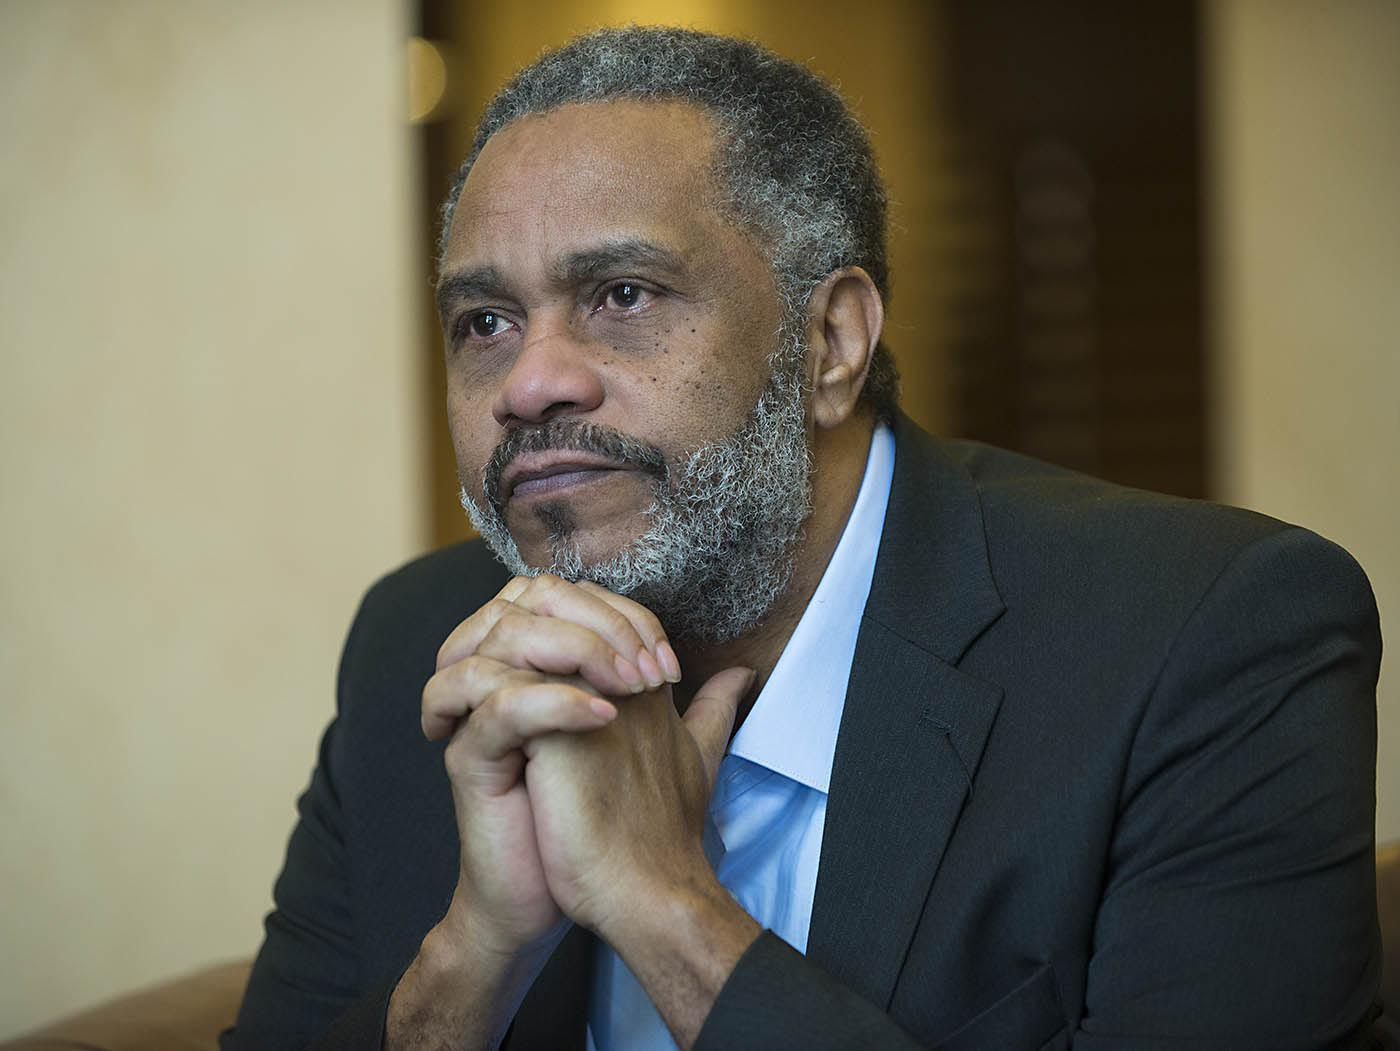 Anthony Ray Hinton, who was charged with the murder of two restaurant managers 30 years ago, was exonerated in 2015 through the Equal Justice Initiative. Hinton will visit the University Wednesday to share his story.